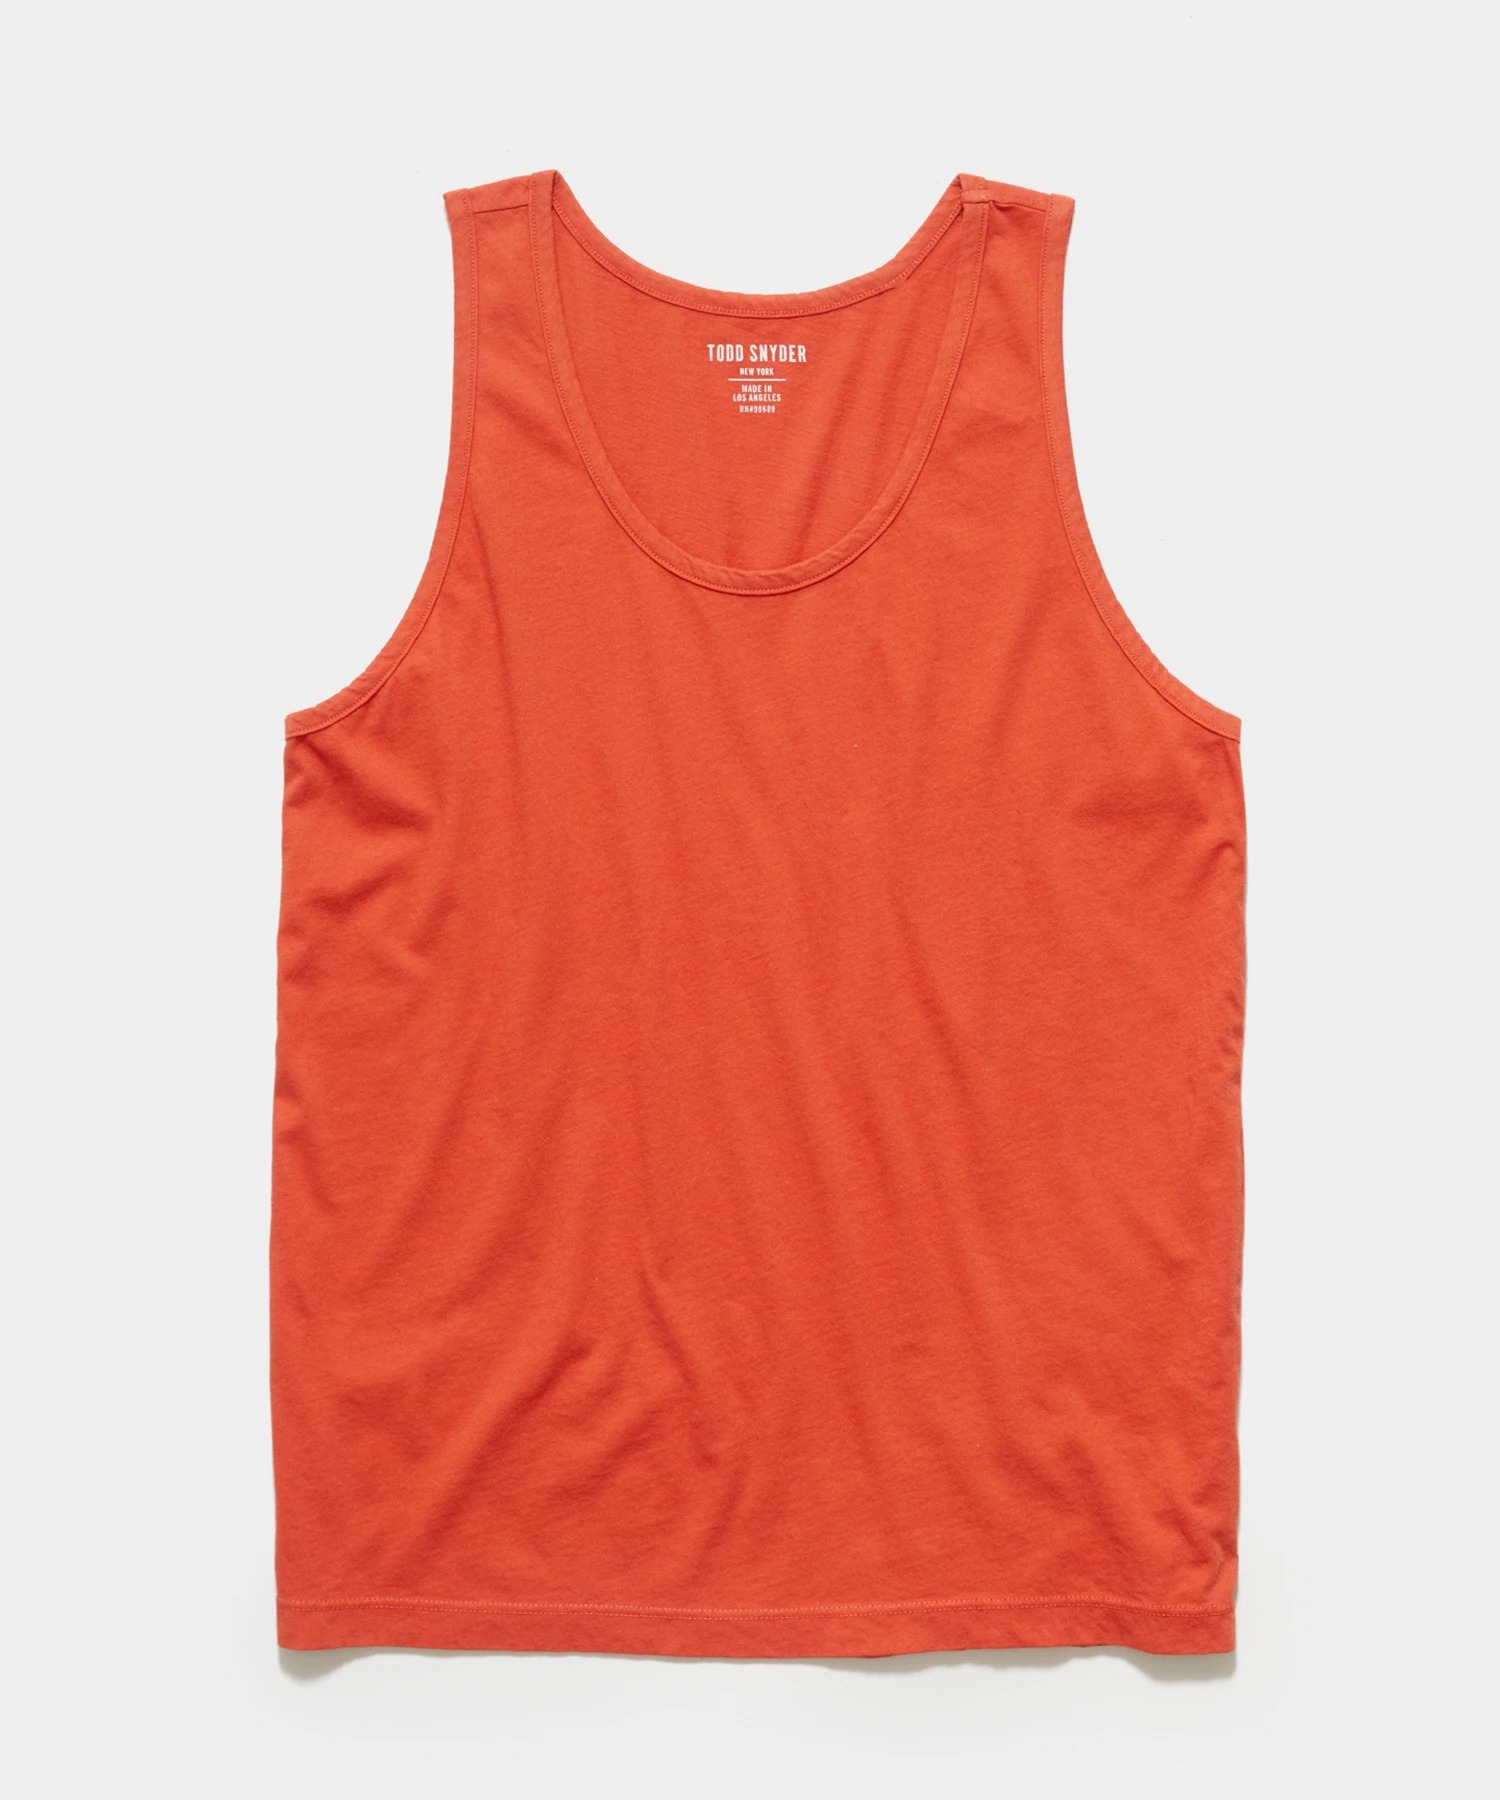 Todd Snyder Made in L.A. Tank Top